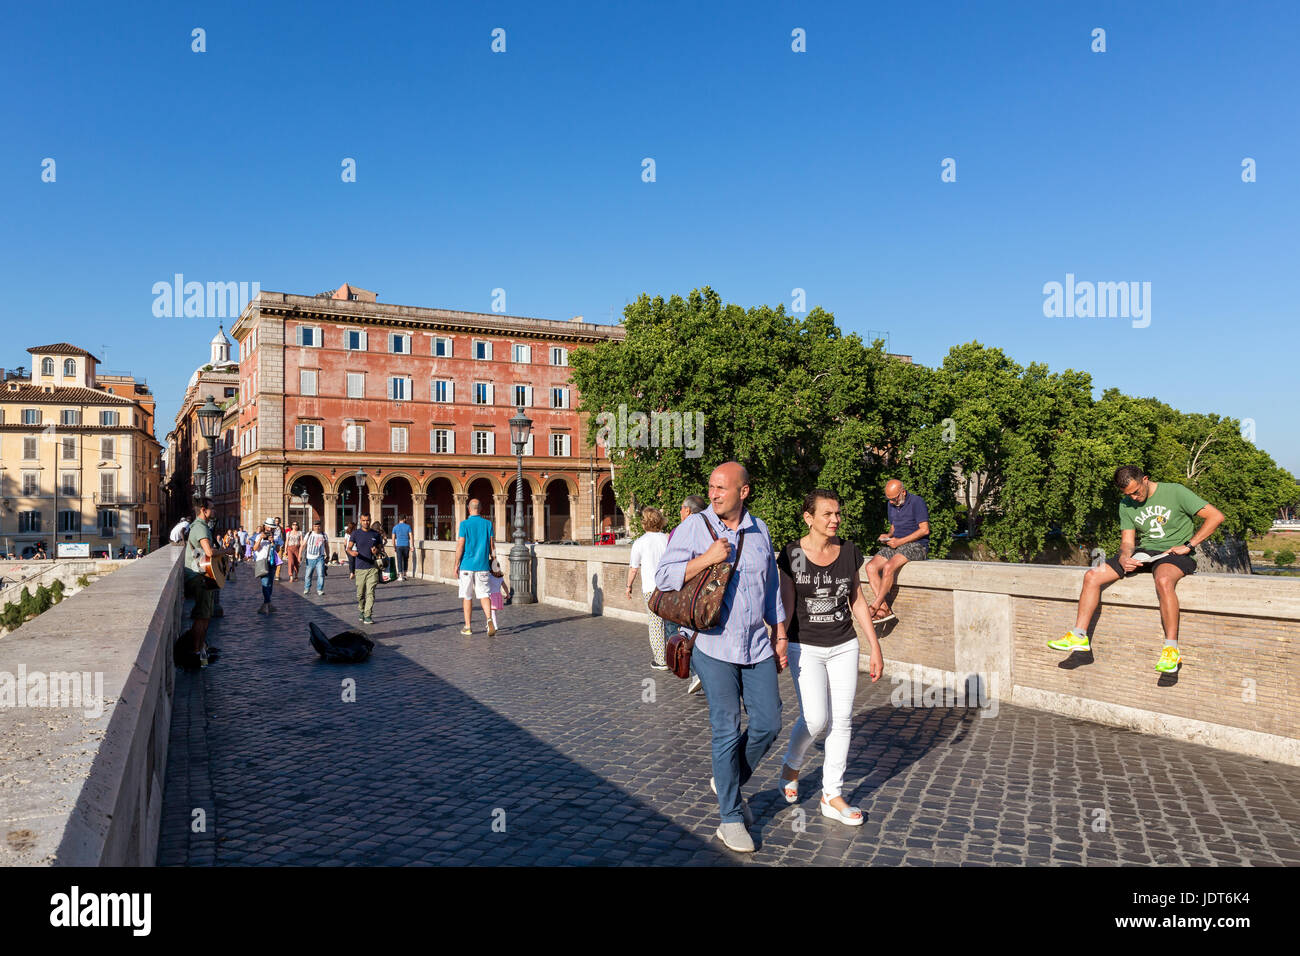 People walking on Ponte Sisto to go in Piazza Trilussa, Trastevere, Rome, Italy Stock Photo